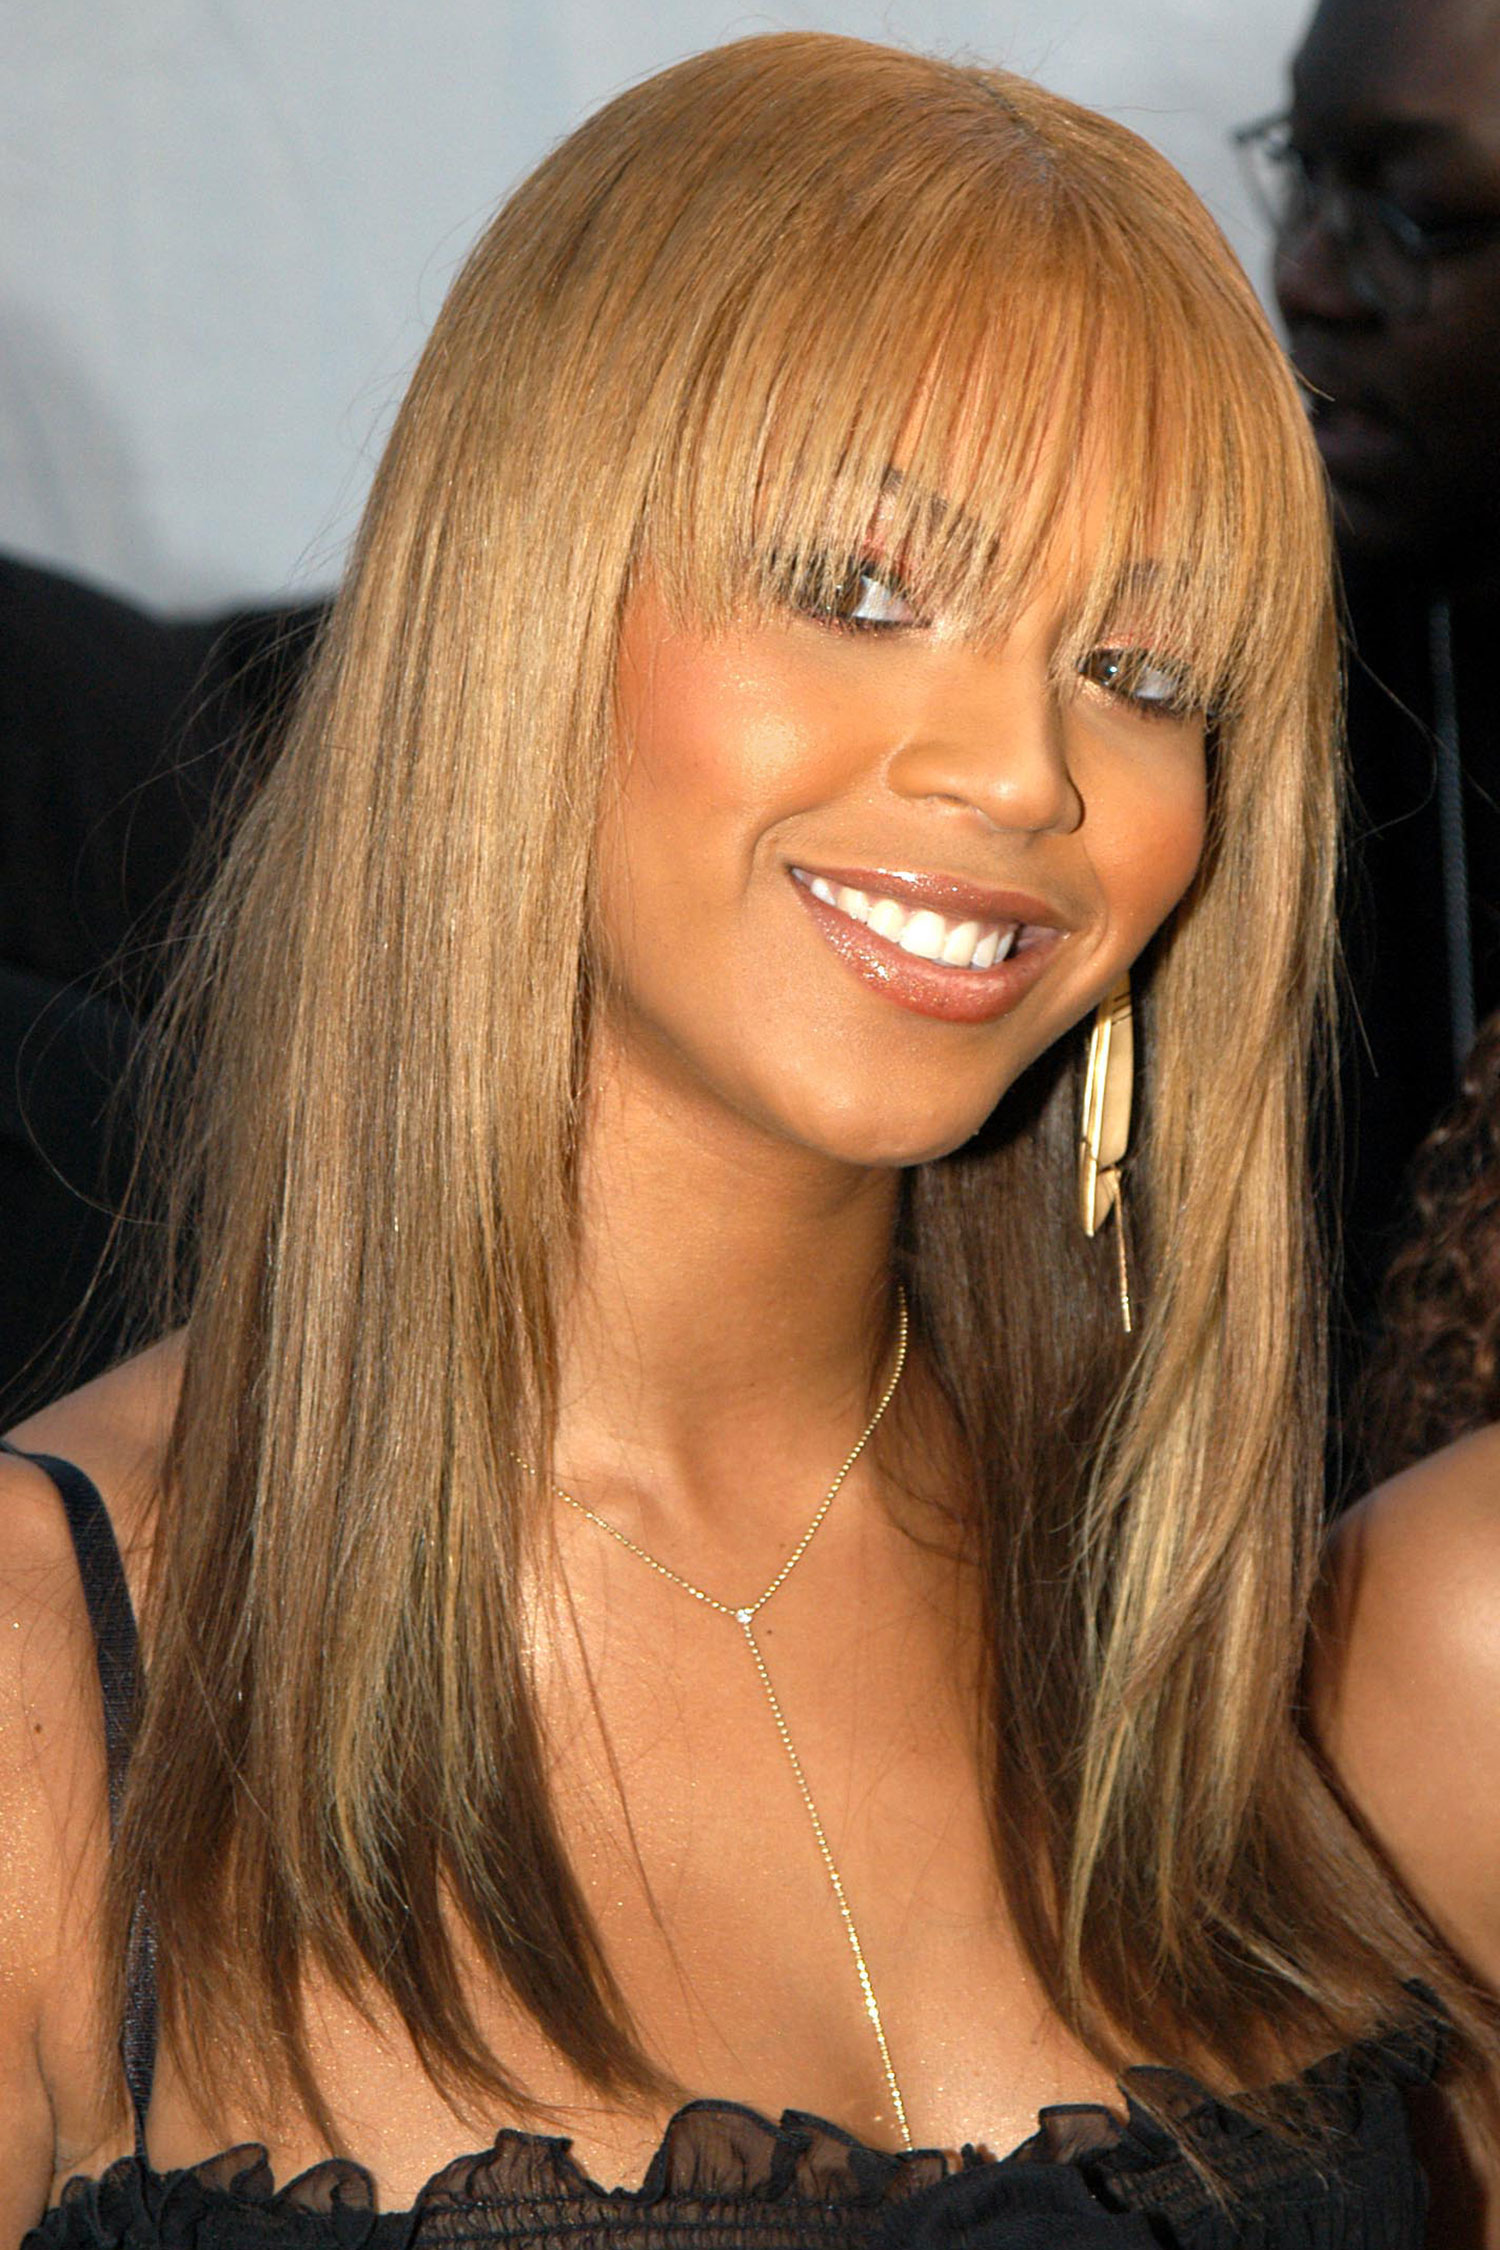 Fantastic 40 Beyonce Hairstyles Beyonce39S Real Hair Long Hair And Short Short Hairstyles For Black Women Fulllsitofus